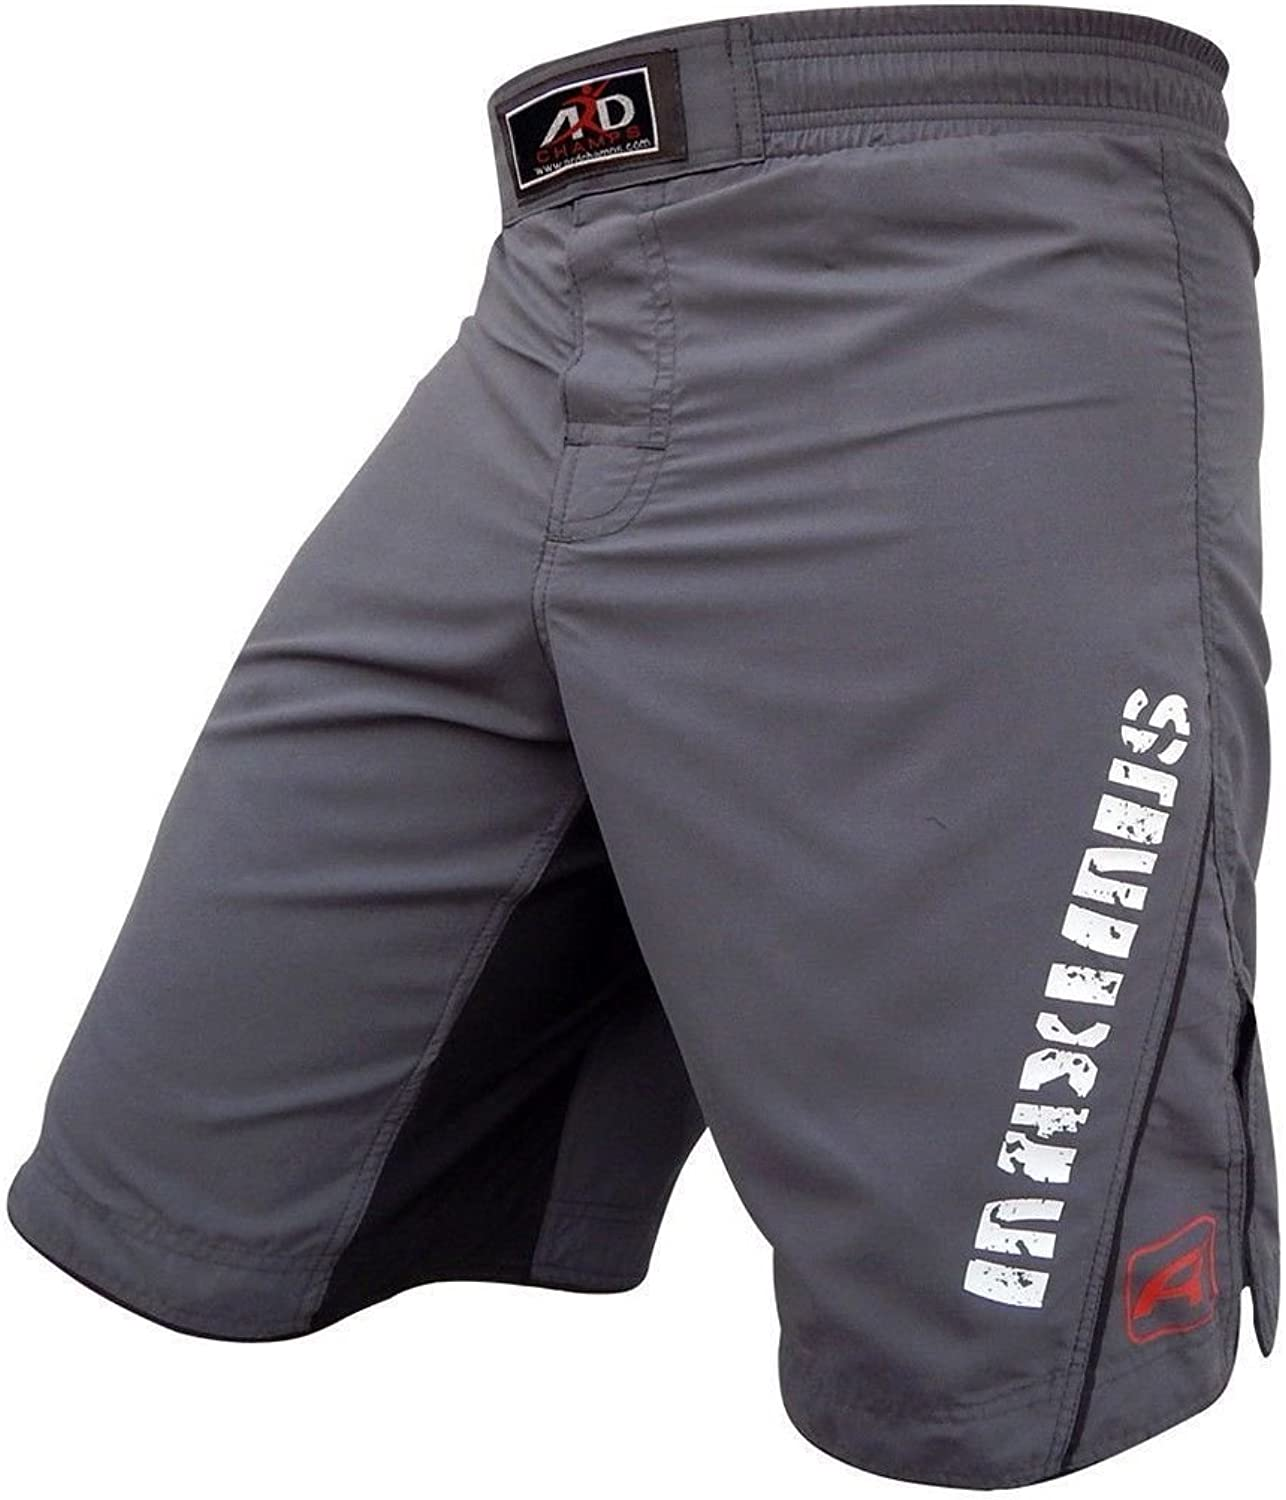 ARD MMA Fight Shorts UFC Cage Fight Clothing Grappling Muay Thai Kick Boxing